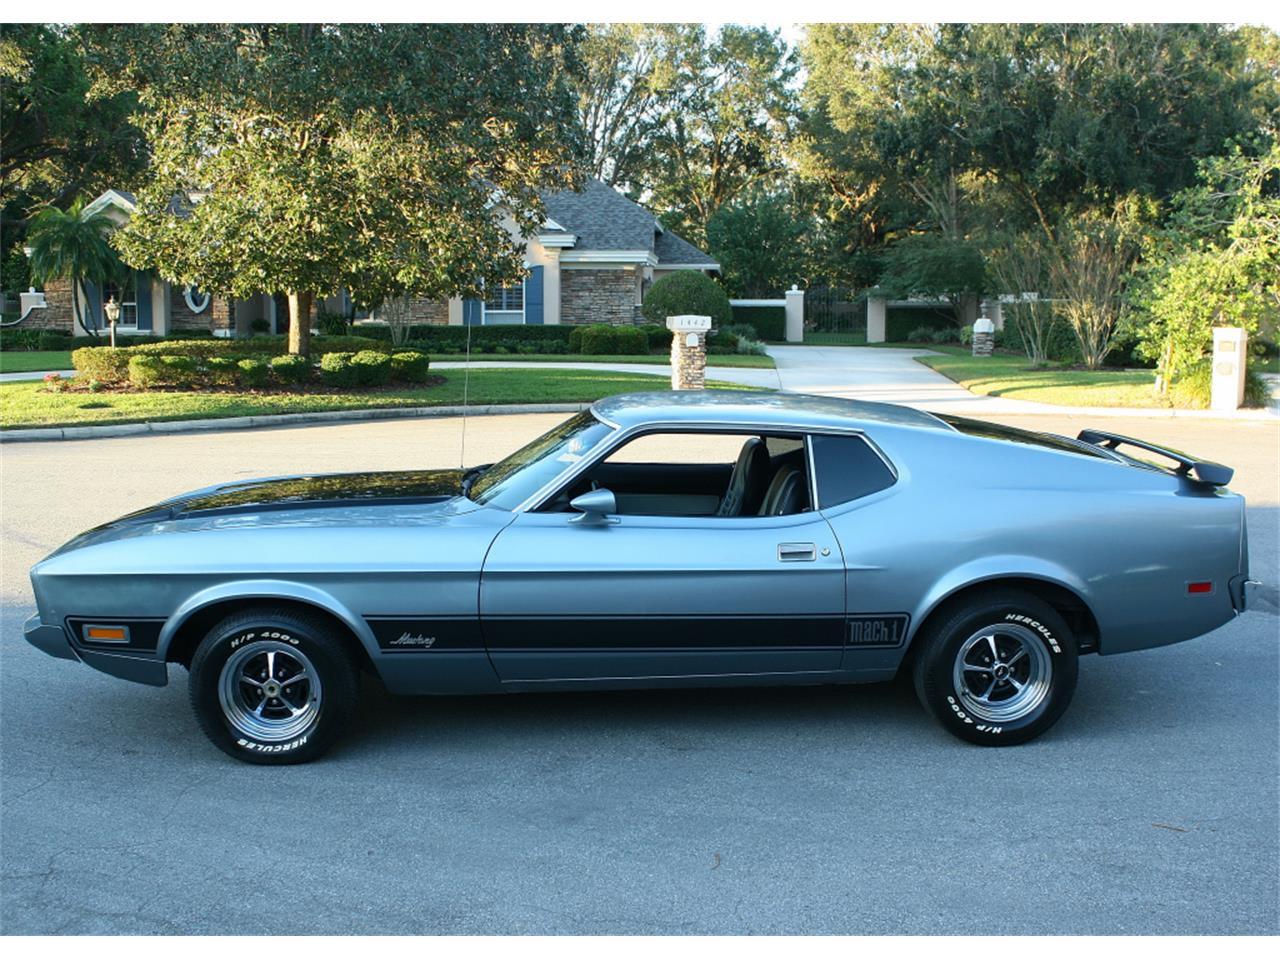 Large Picture of Classic '73 Mustang located in Lakeland Florida - $17,500.00 Offered by MJC Classic Cars - MA11